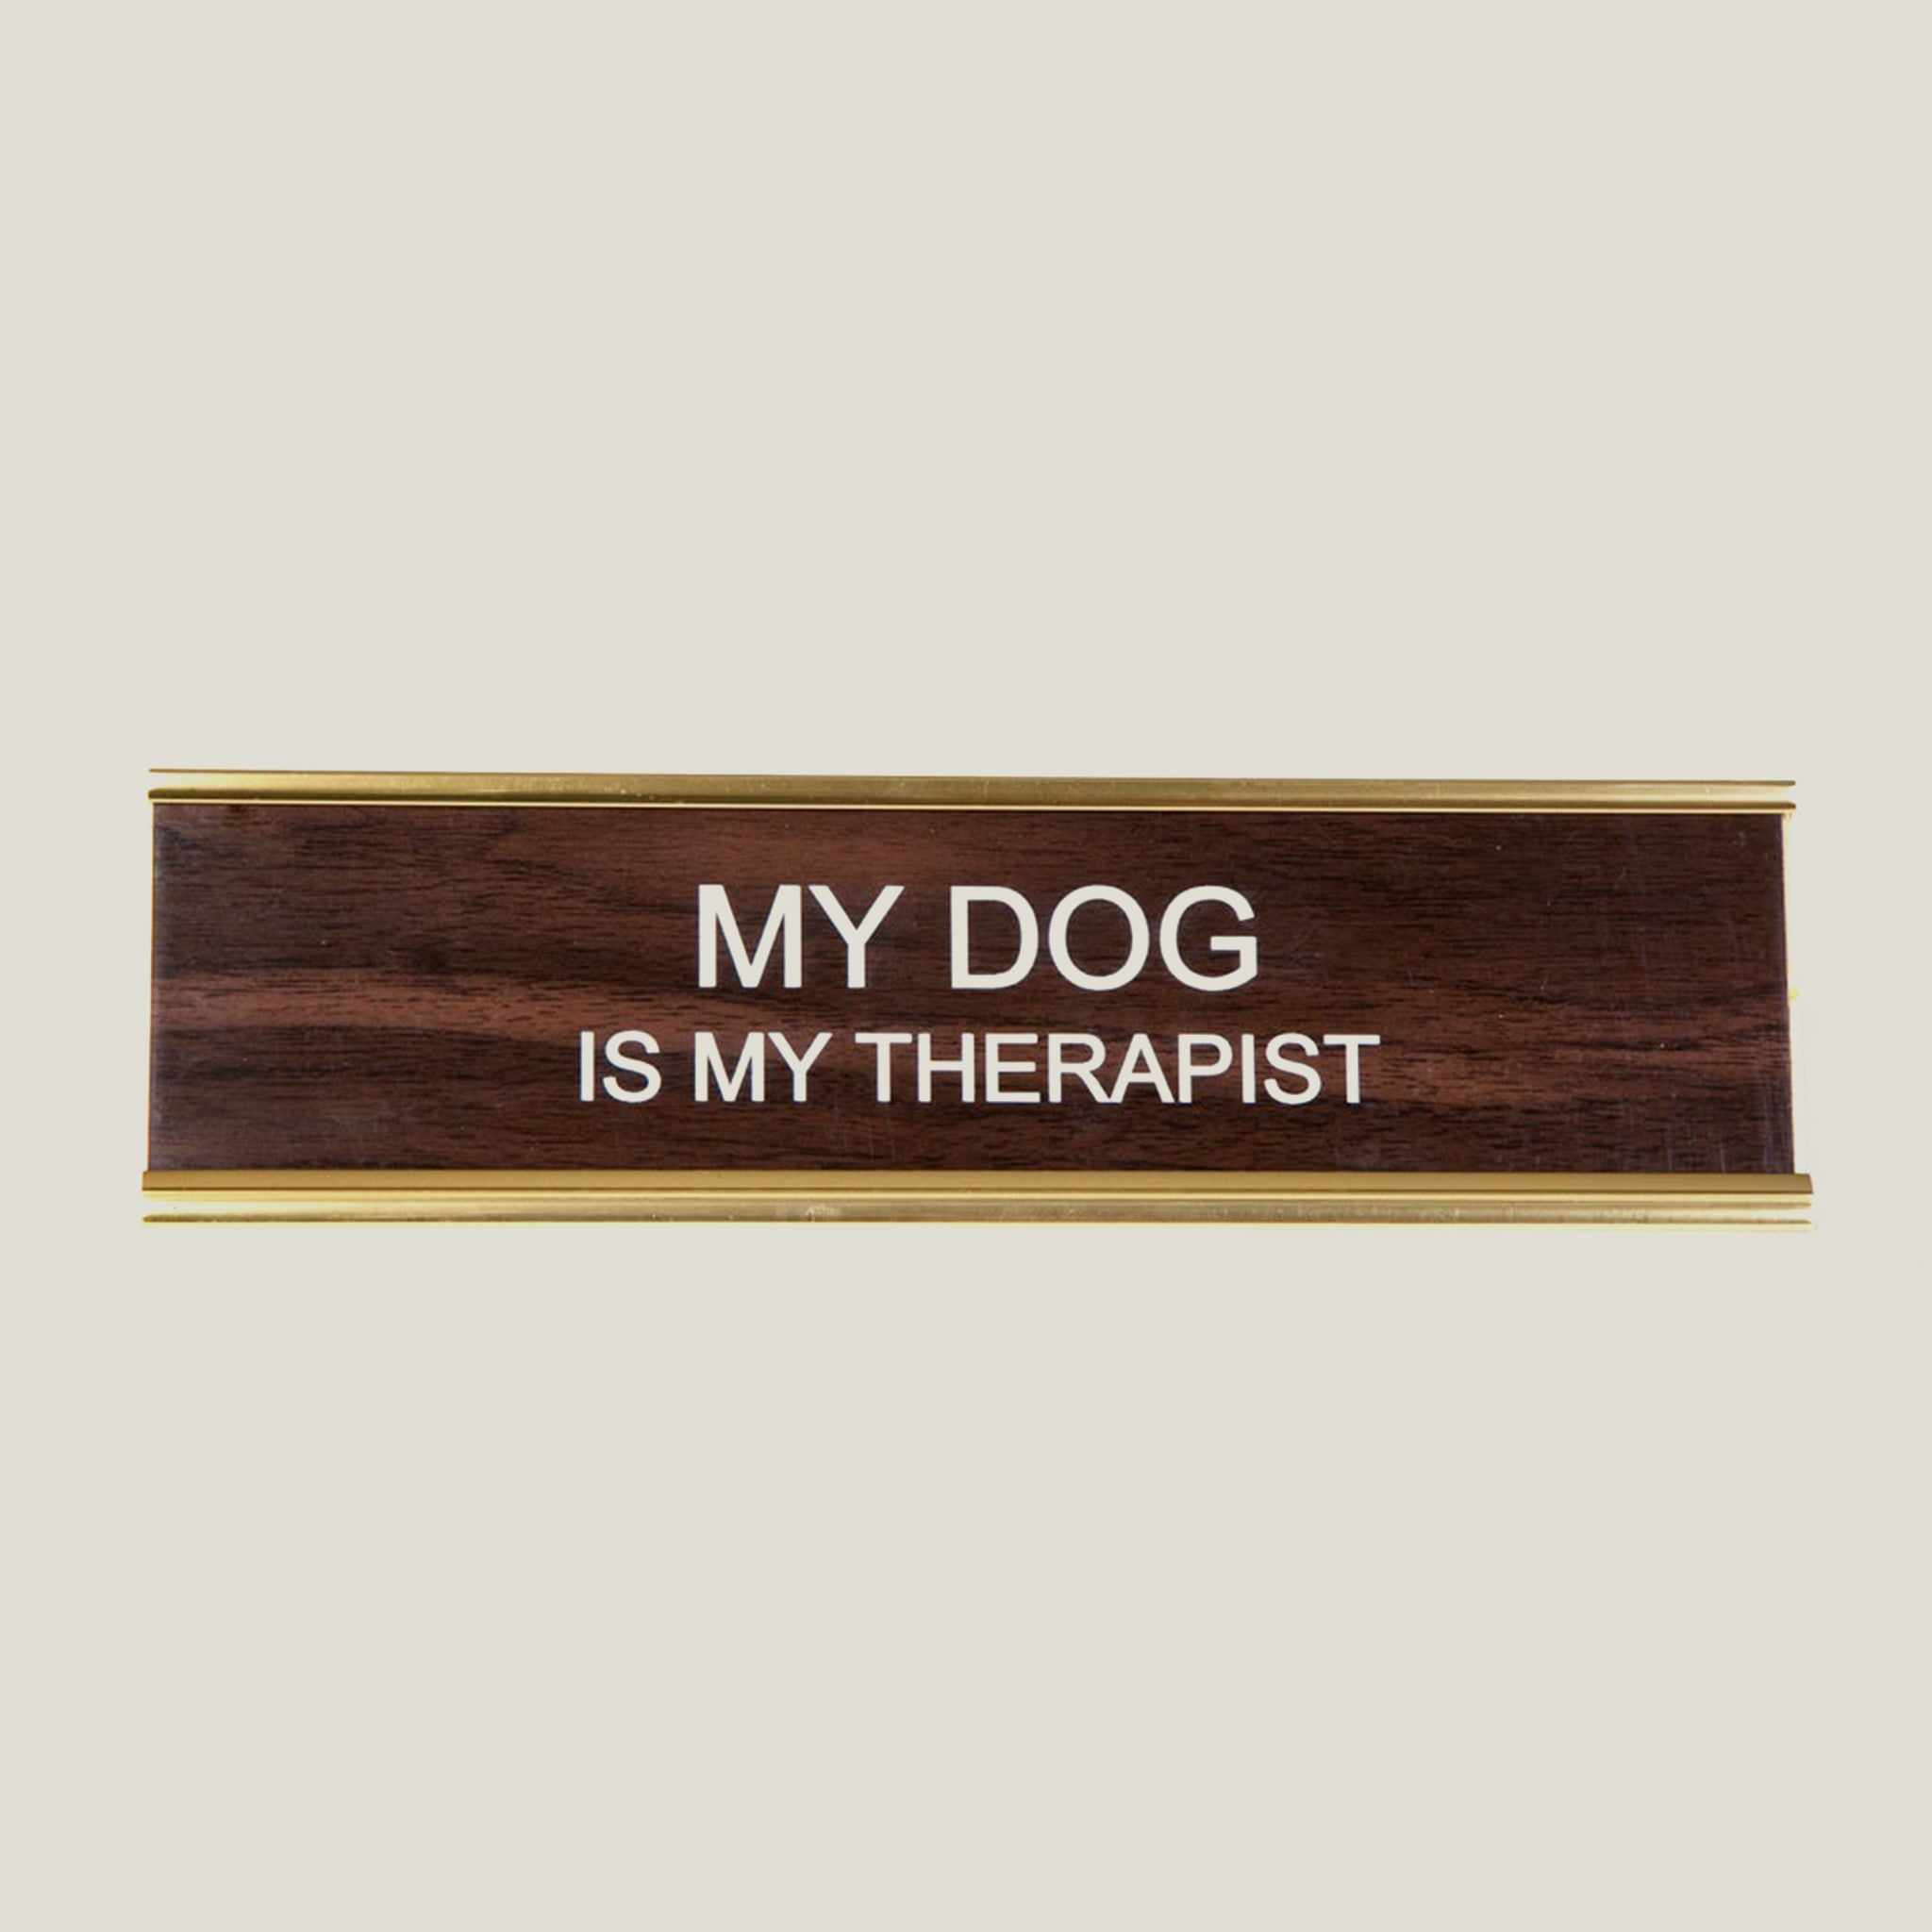 My Dog is my Therapist - Desk Sign - Blackbird General Store